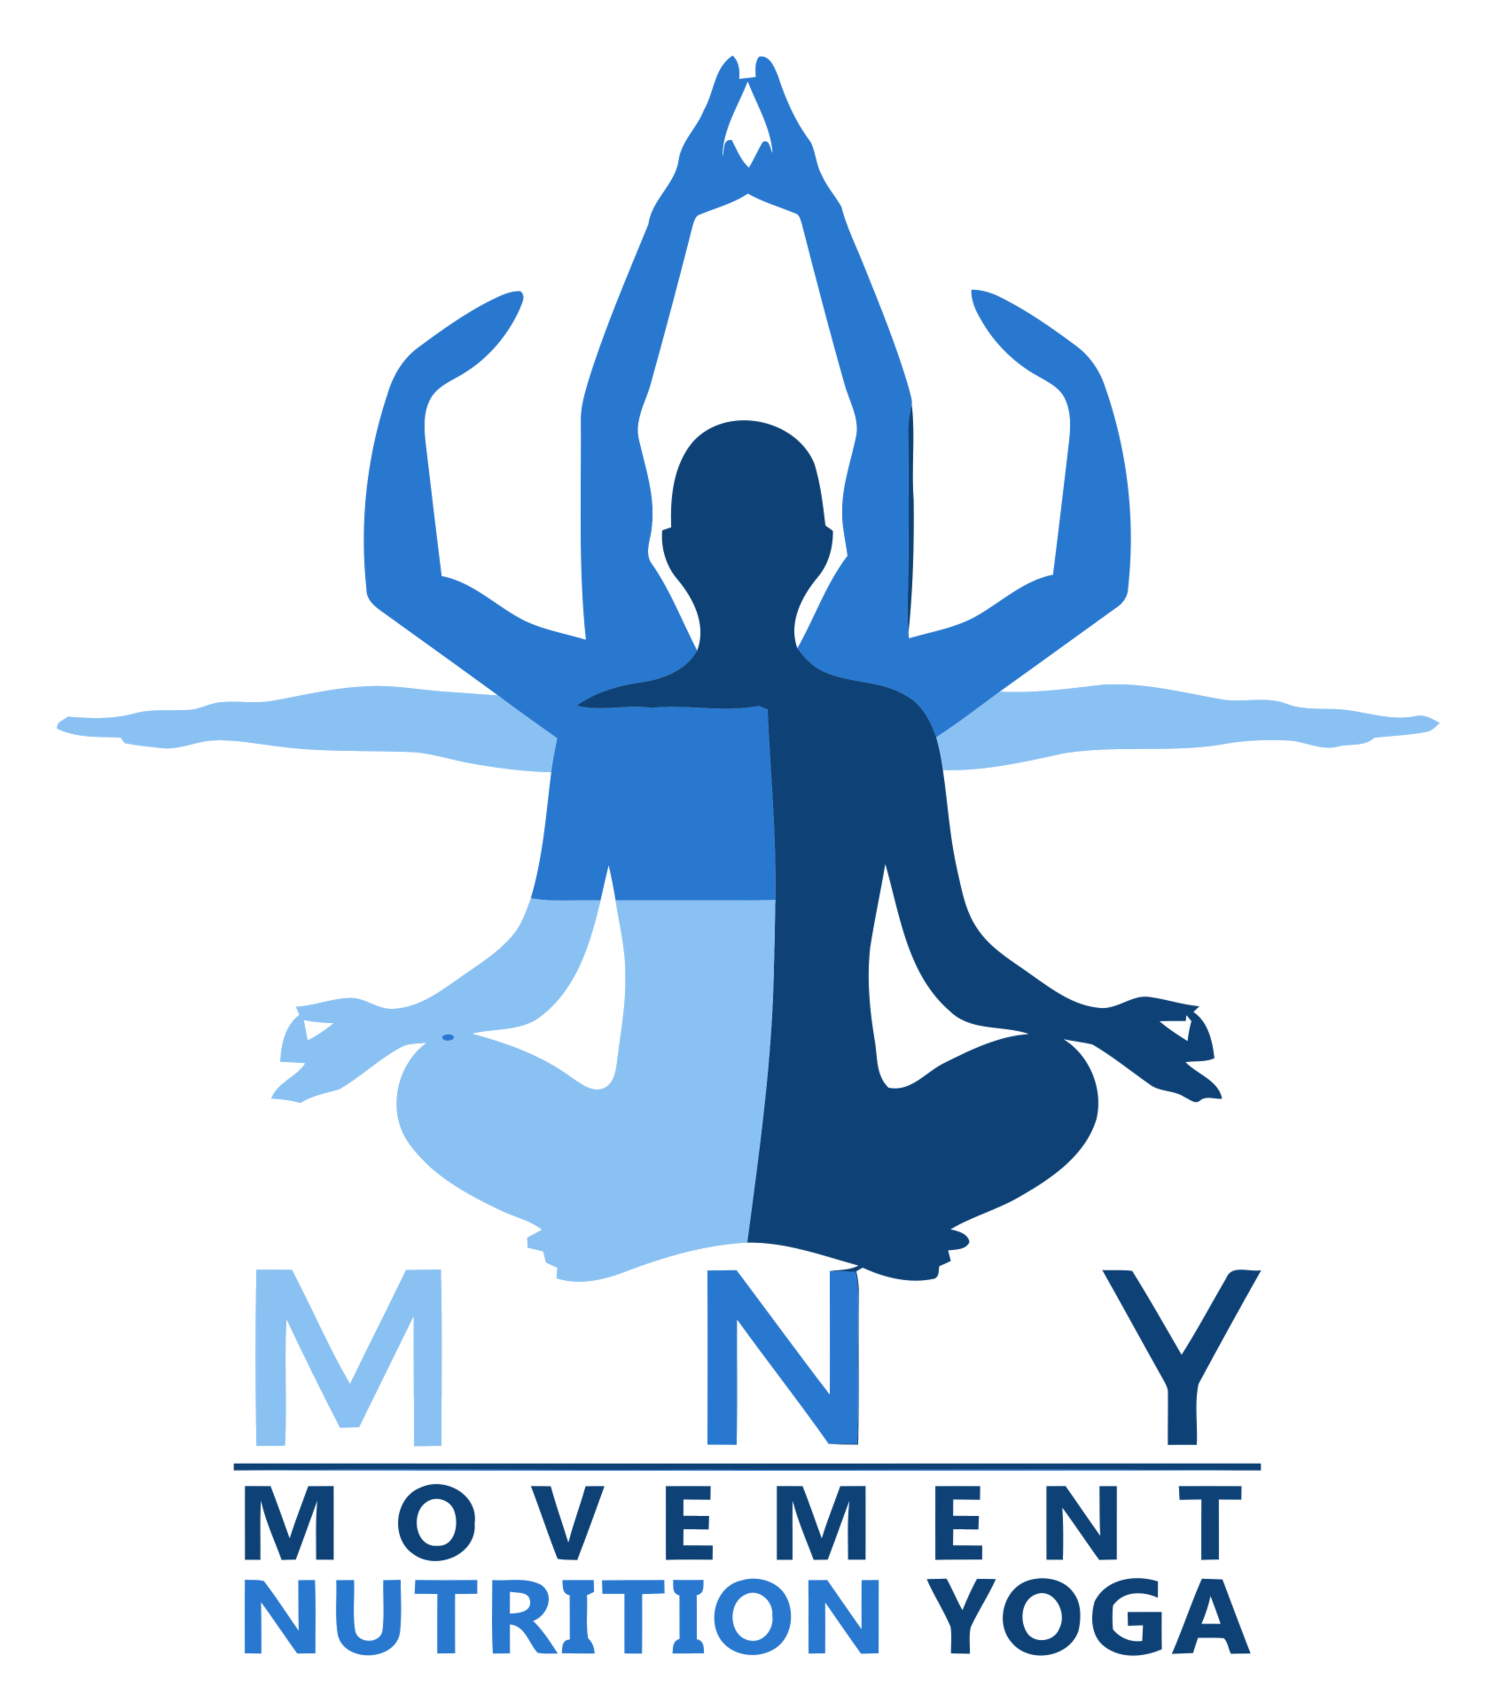 Mindful Movement Nutrition Yoga